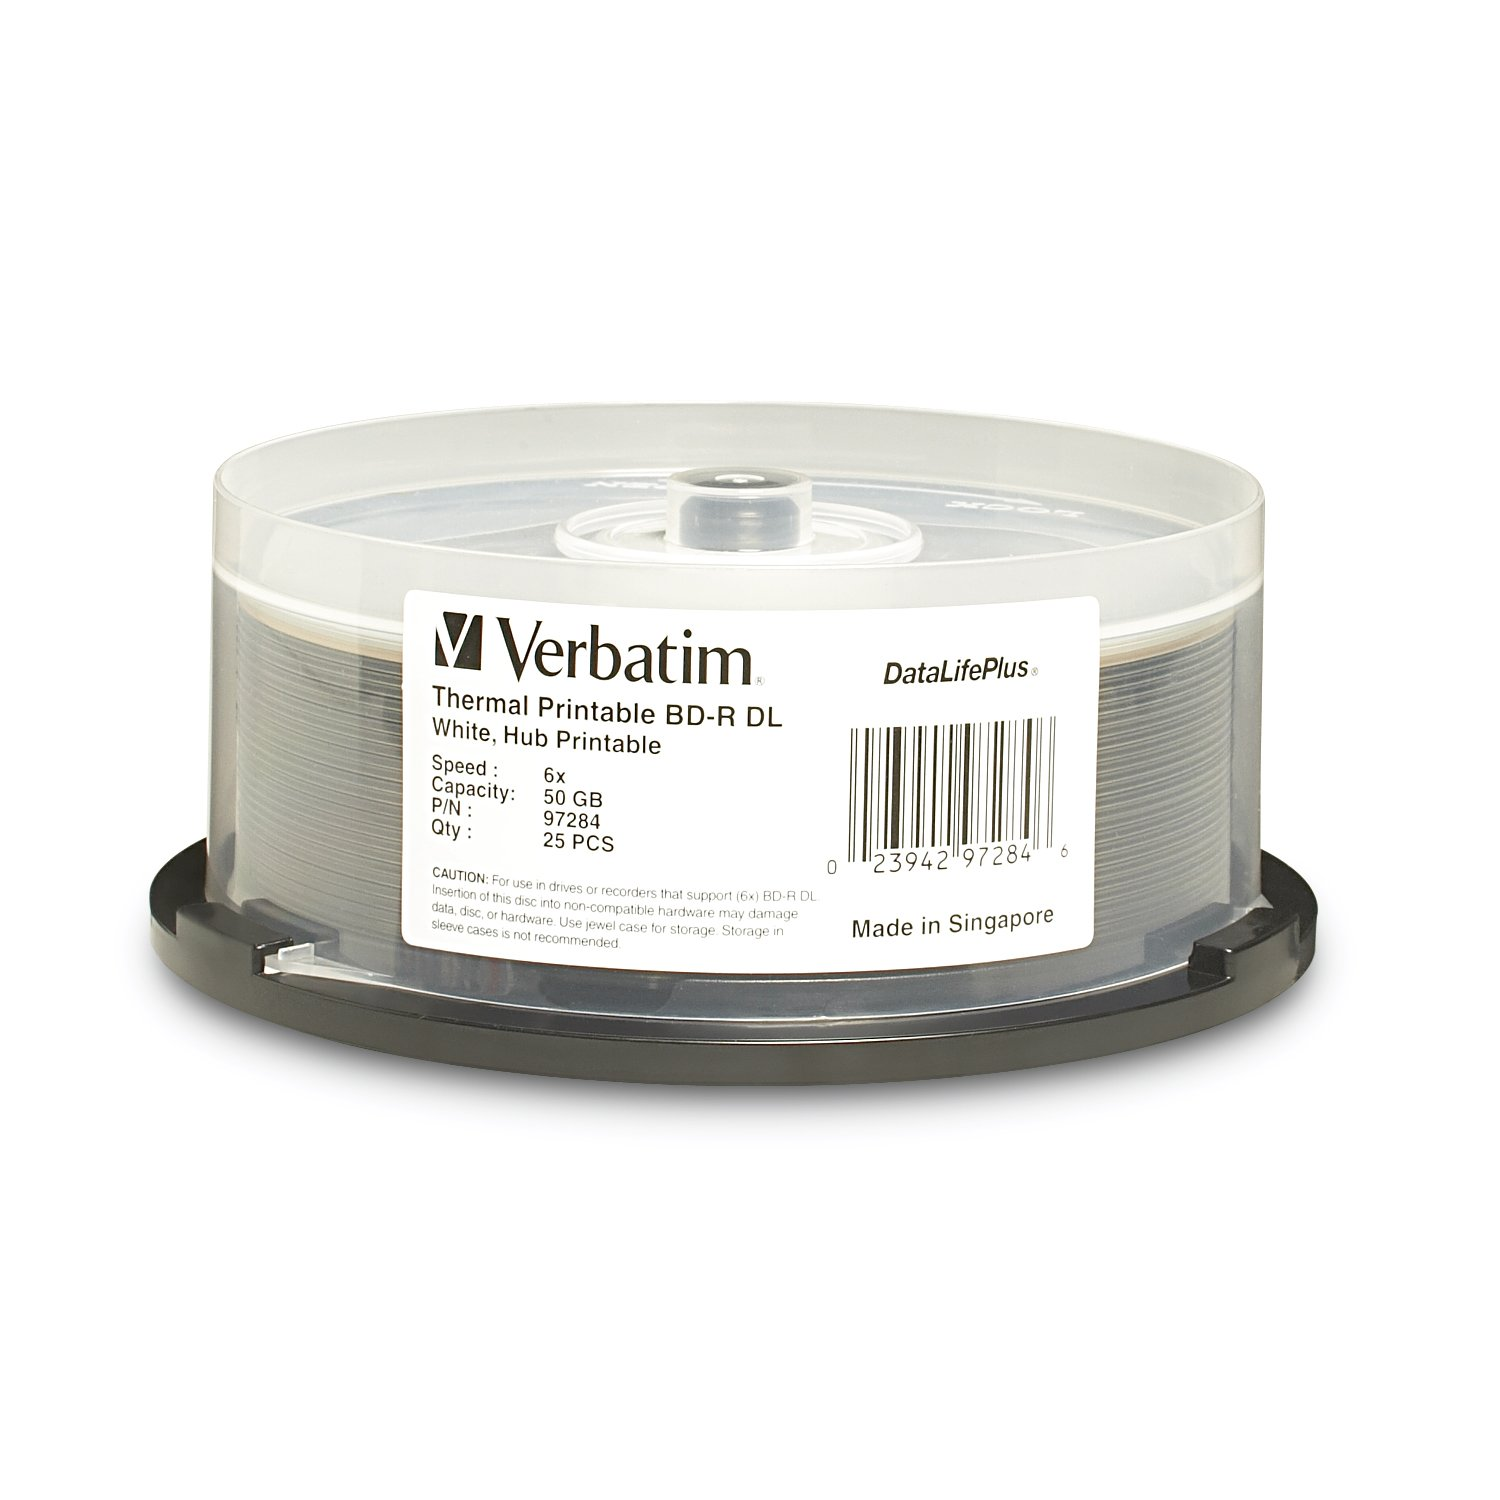 Verbatim BD-R 25GB 6X DataLifePlus White Inkjet Printable, Hub Printable - 50pk Spindle VERBATIM CORPORATION 97339 Blank Media & Cleaning Cartridges